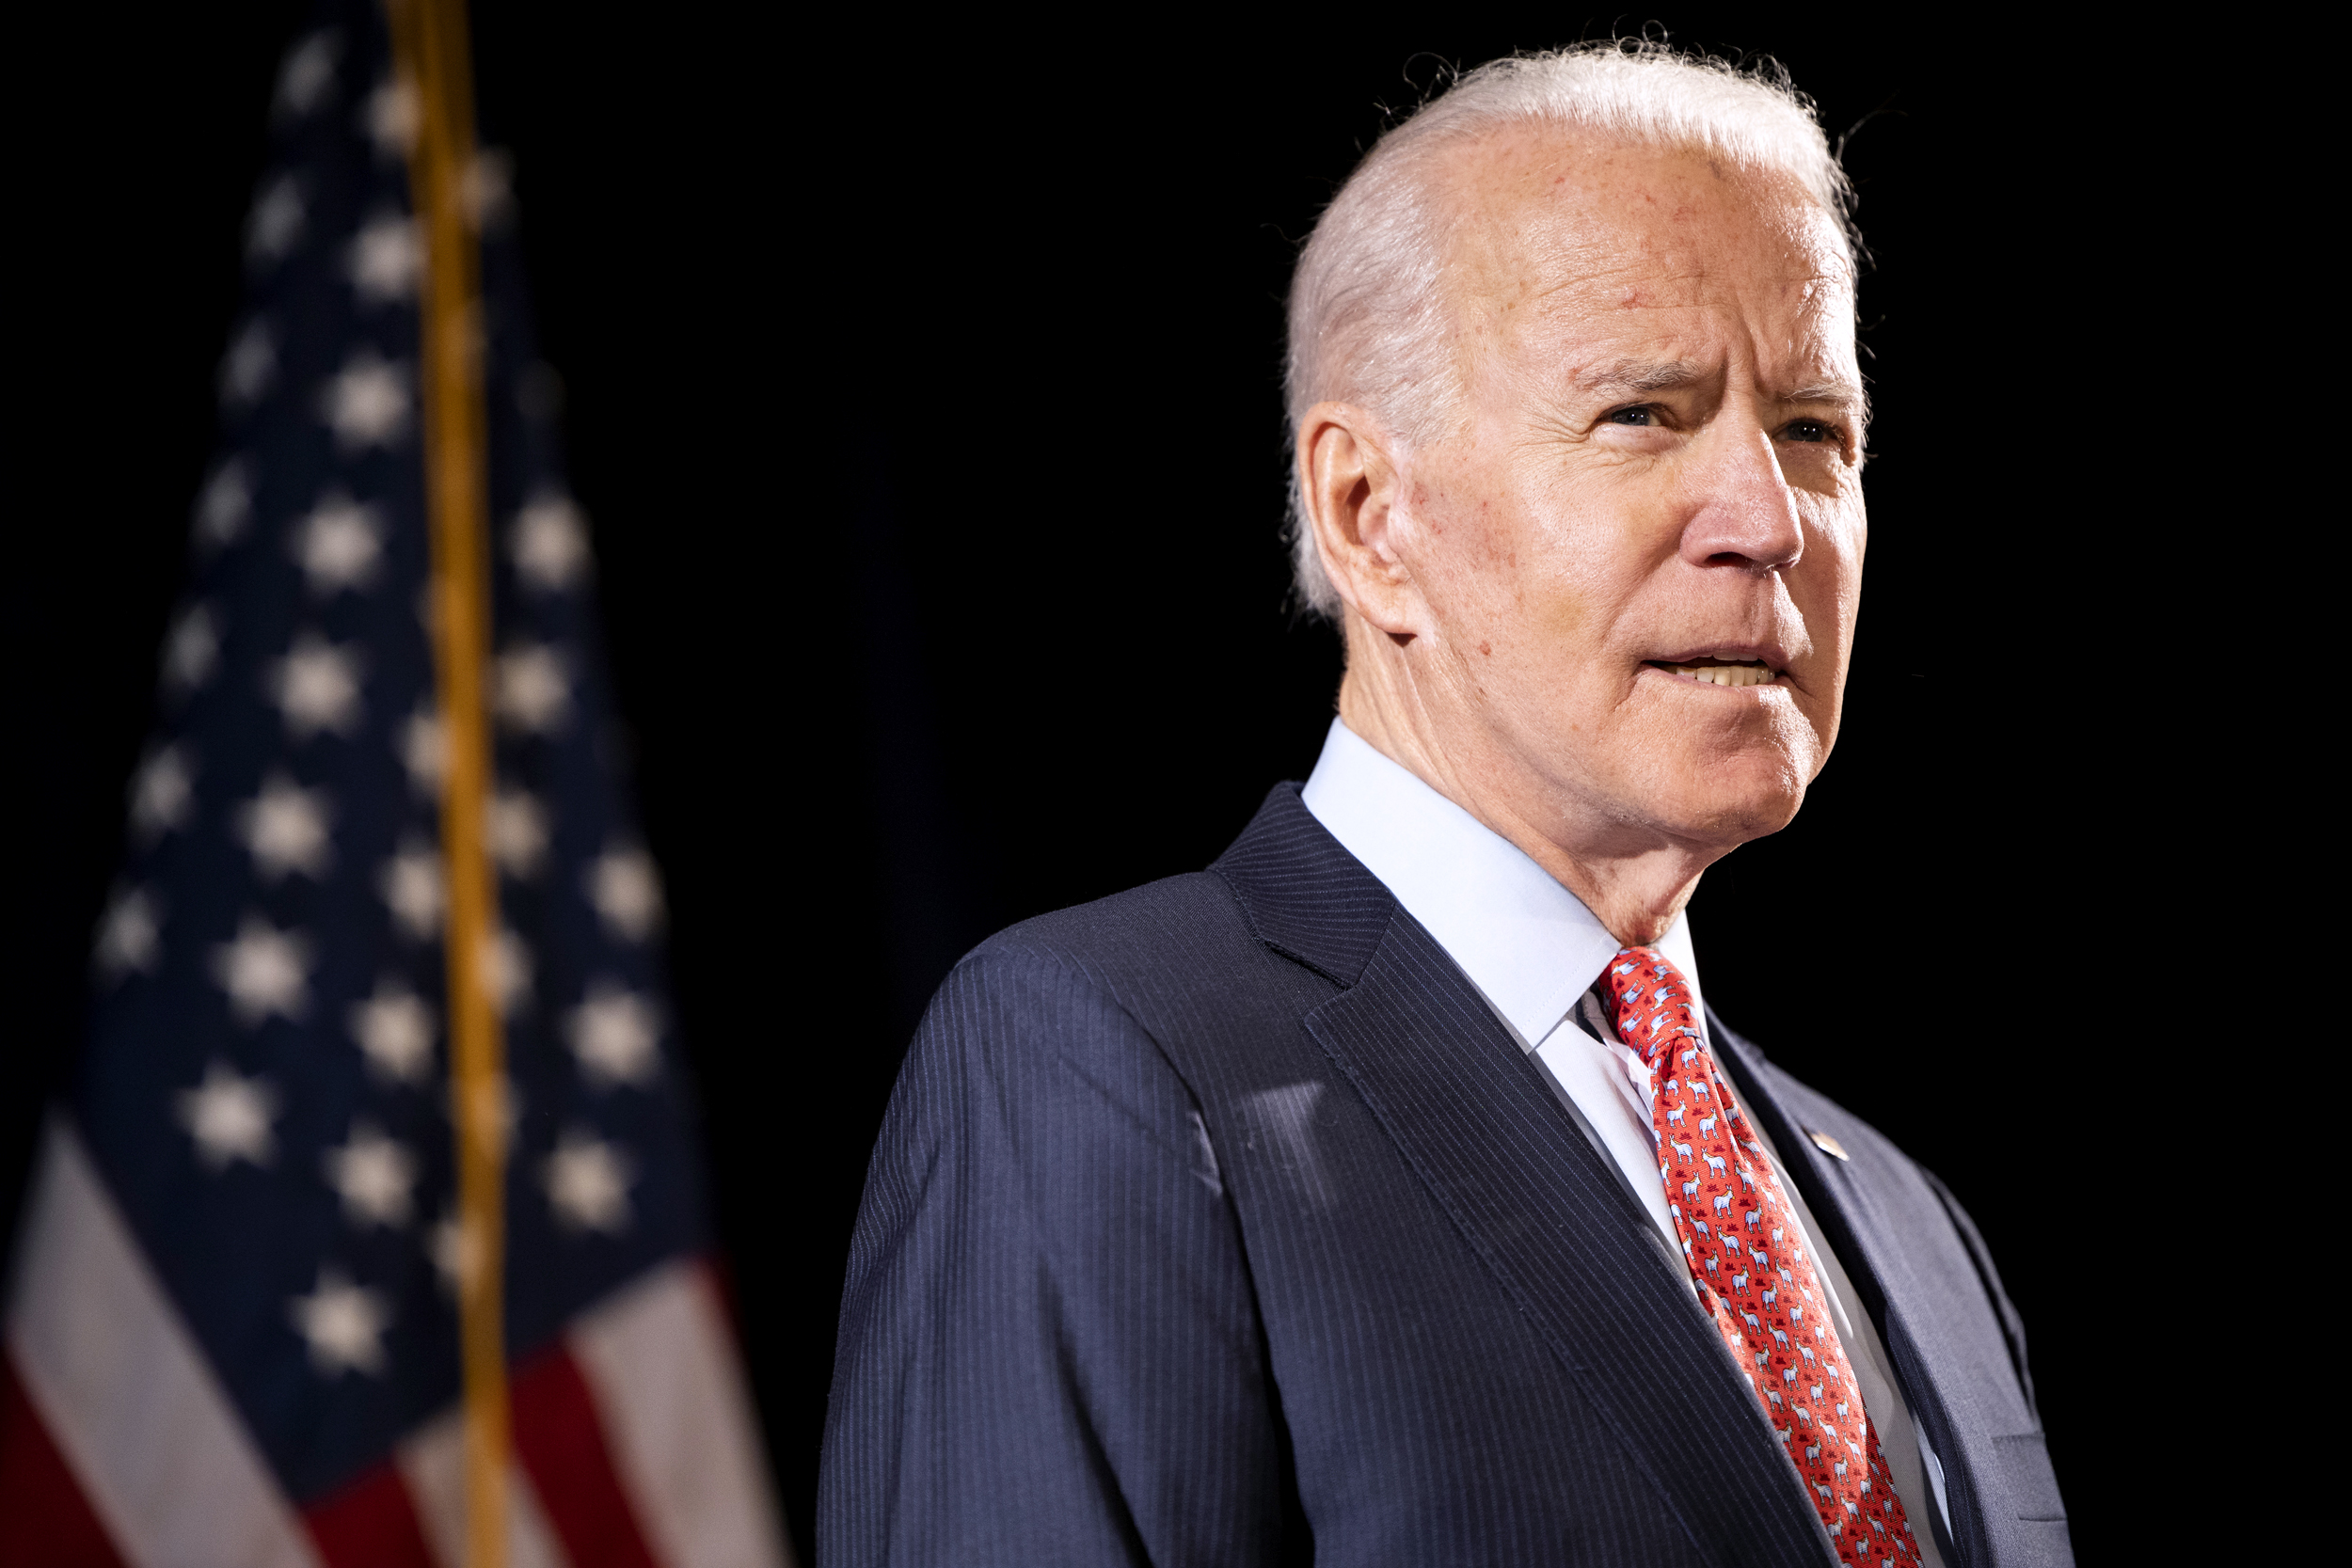 Former Vice President Joe Biden, 2020 Democratic presidential candidate, speaks during a news conference in Wilmington, Delaware, U.S., on Thursday, March 12, 2020. Biden sought to deliver an antidote to President Donald Trump's response to the coronavirus outbreak on Thursday, unveiling a new plan that shows how he would fight the spread of the virus and urging the administration to use it. Photographer: Ryan Collerd/Bloomberg via Getty Images